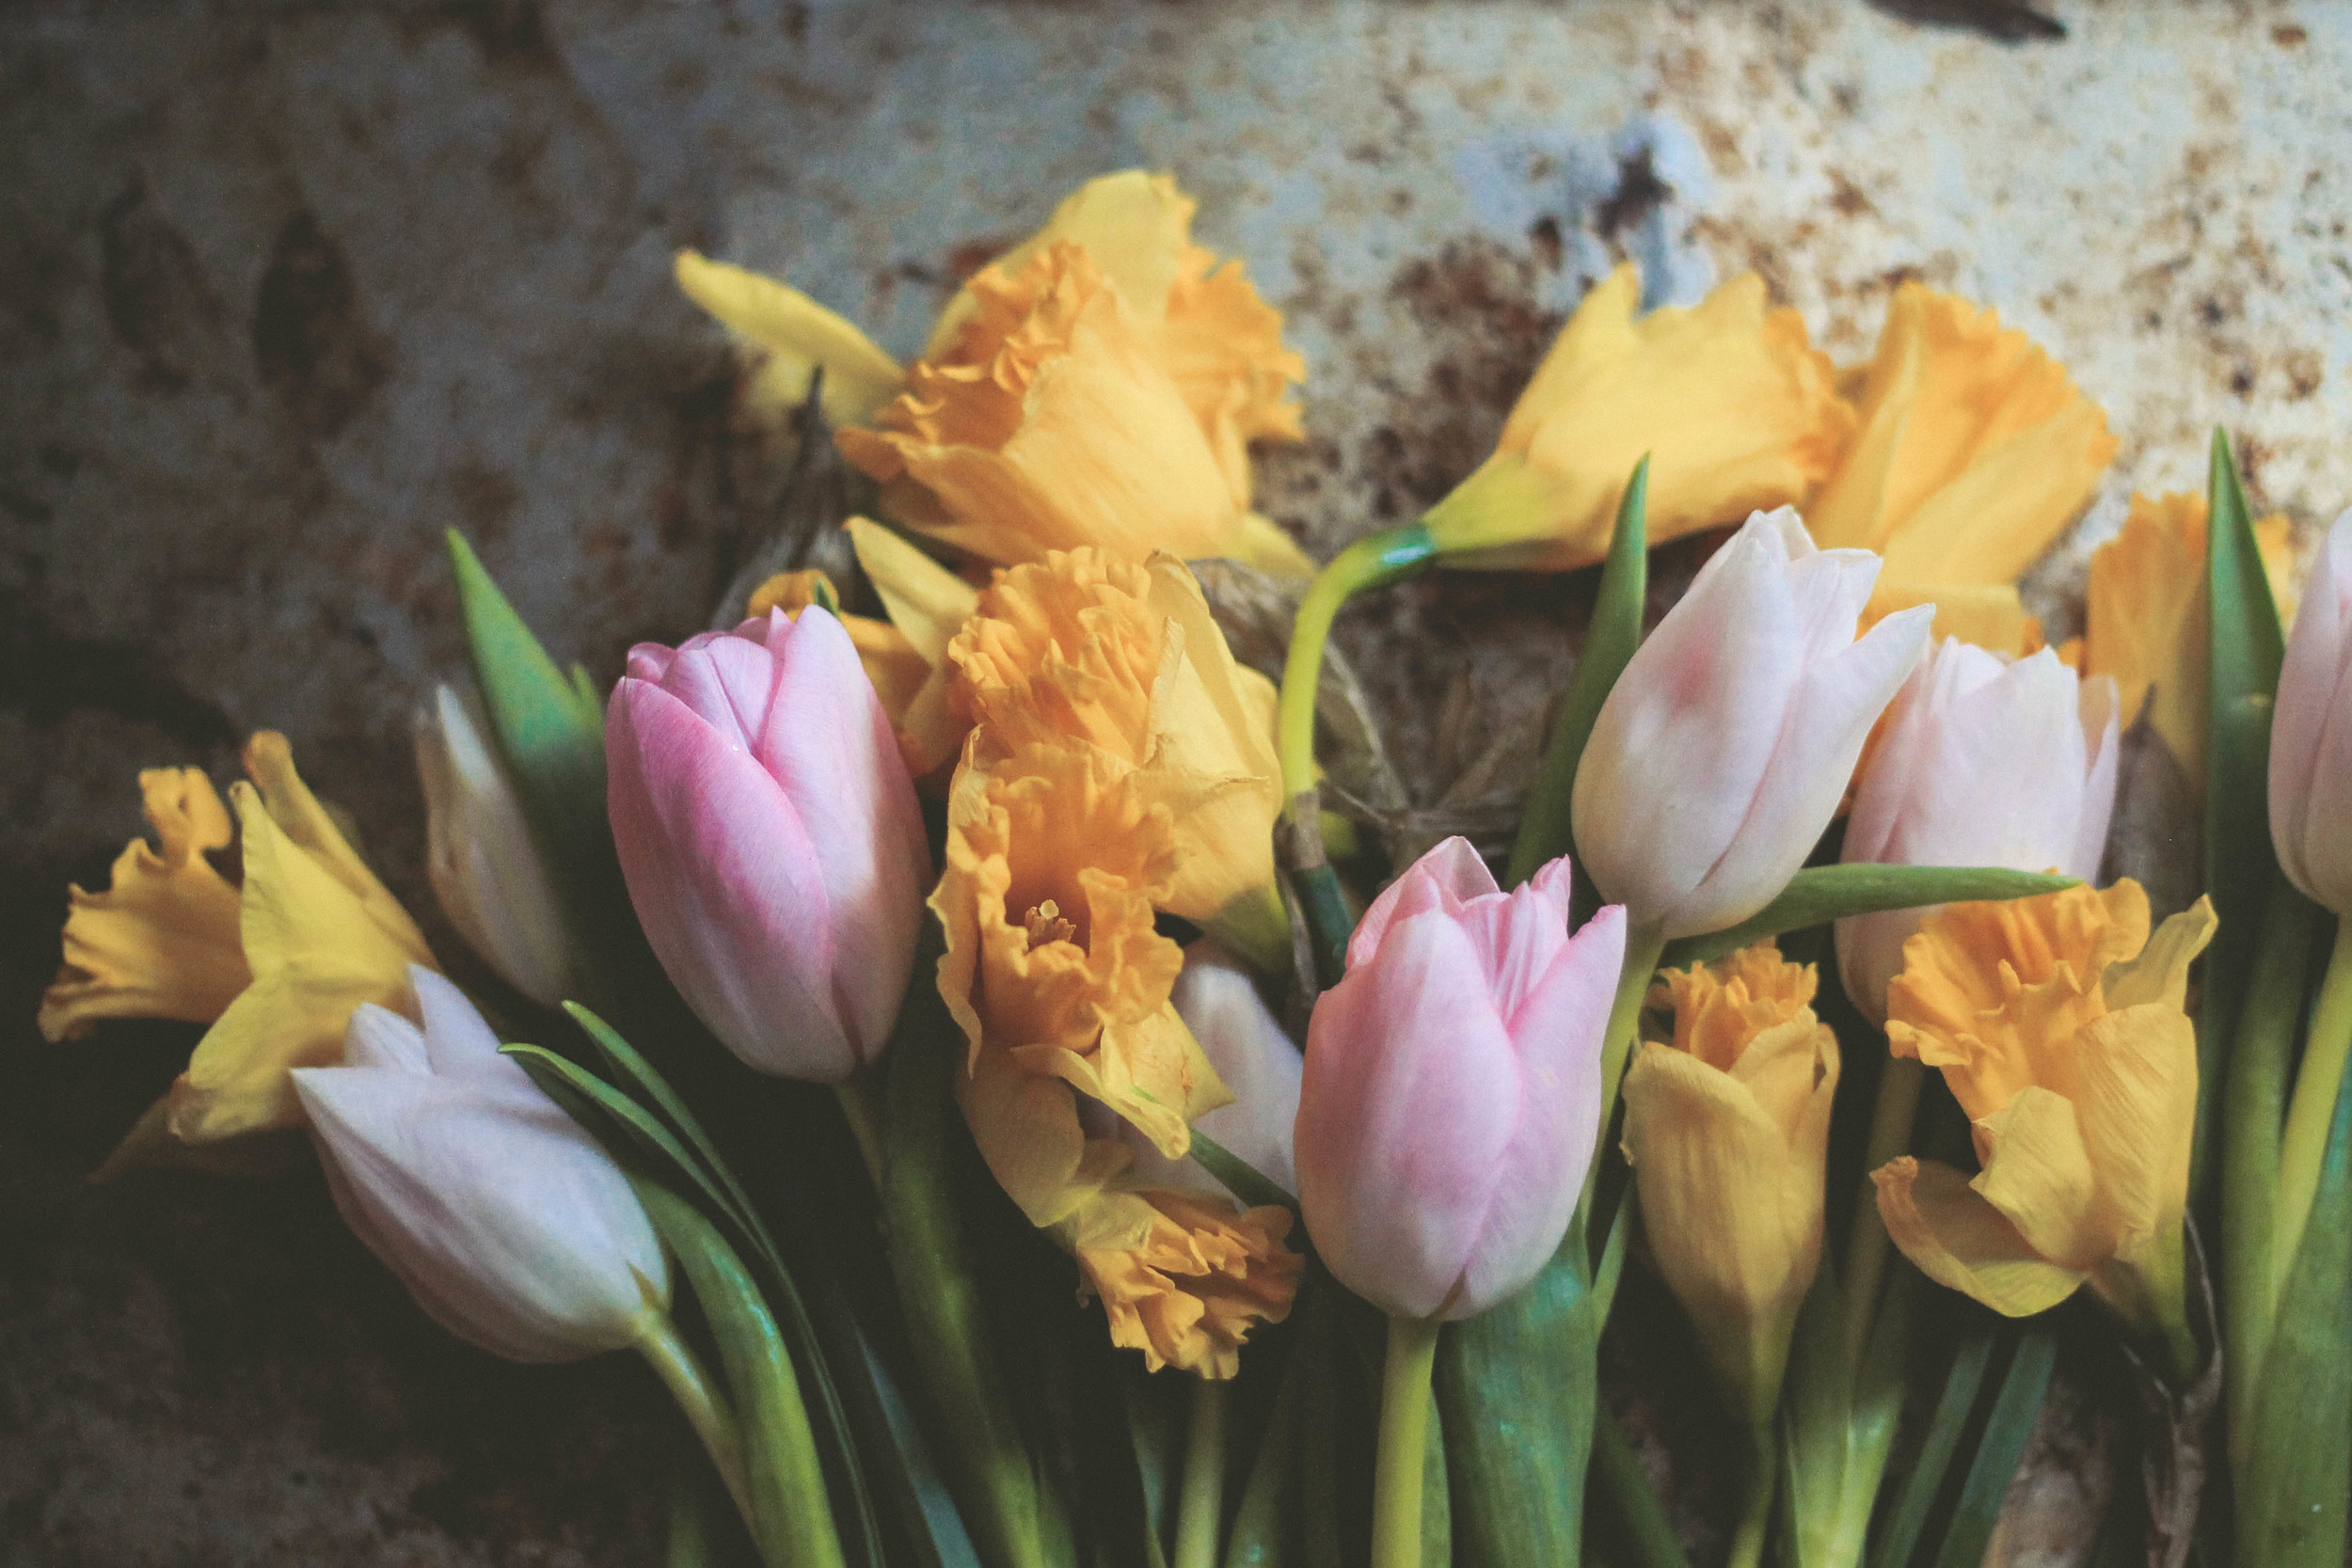 tulips and daffodils in spring | image via: bekuh b.